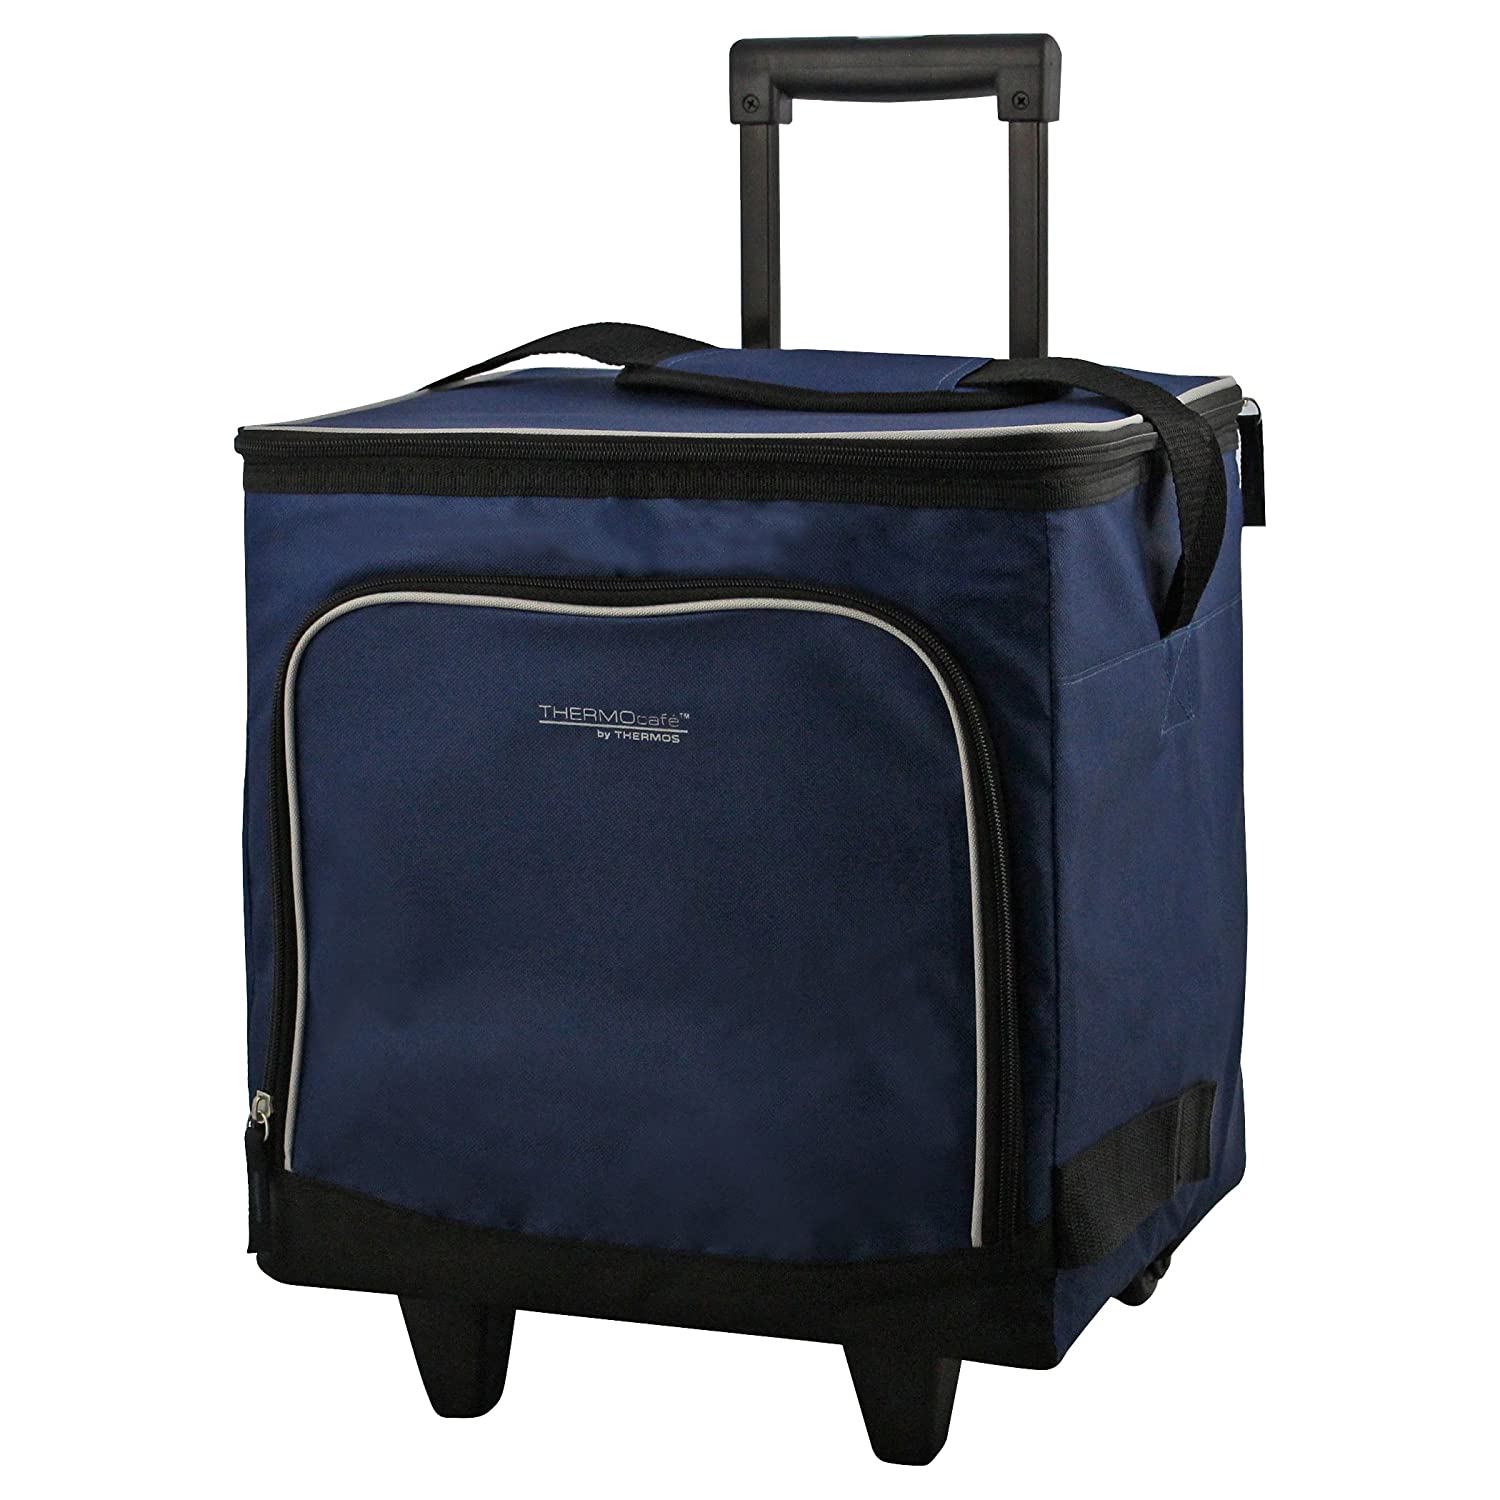 Thermos 158077 Rädern Familie Cool Bag, Navy, 28 Liter